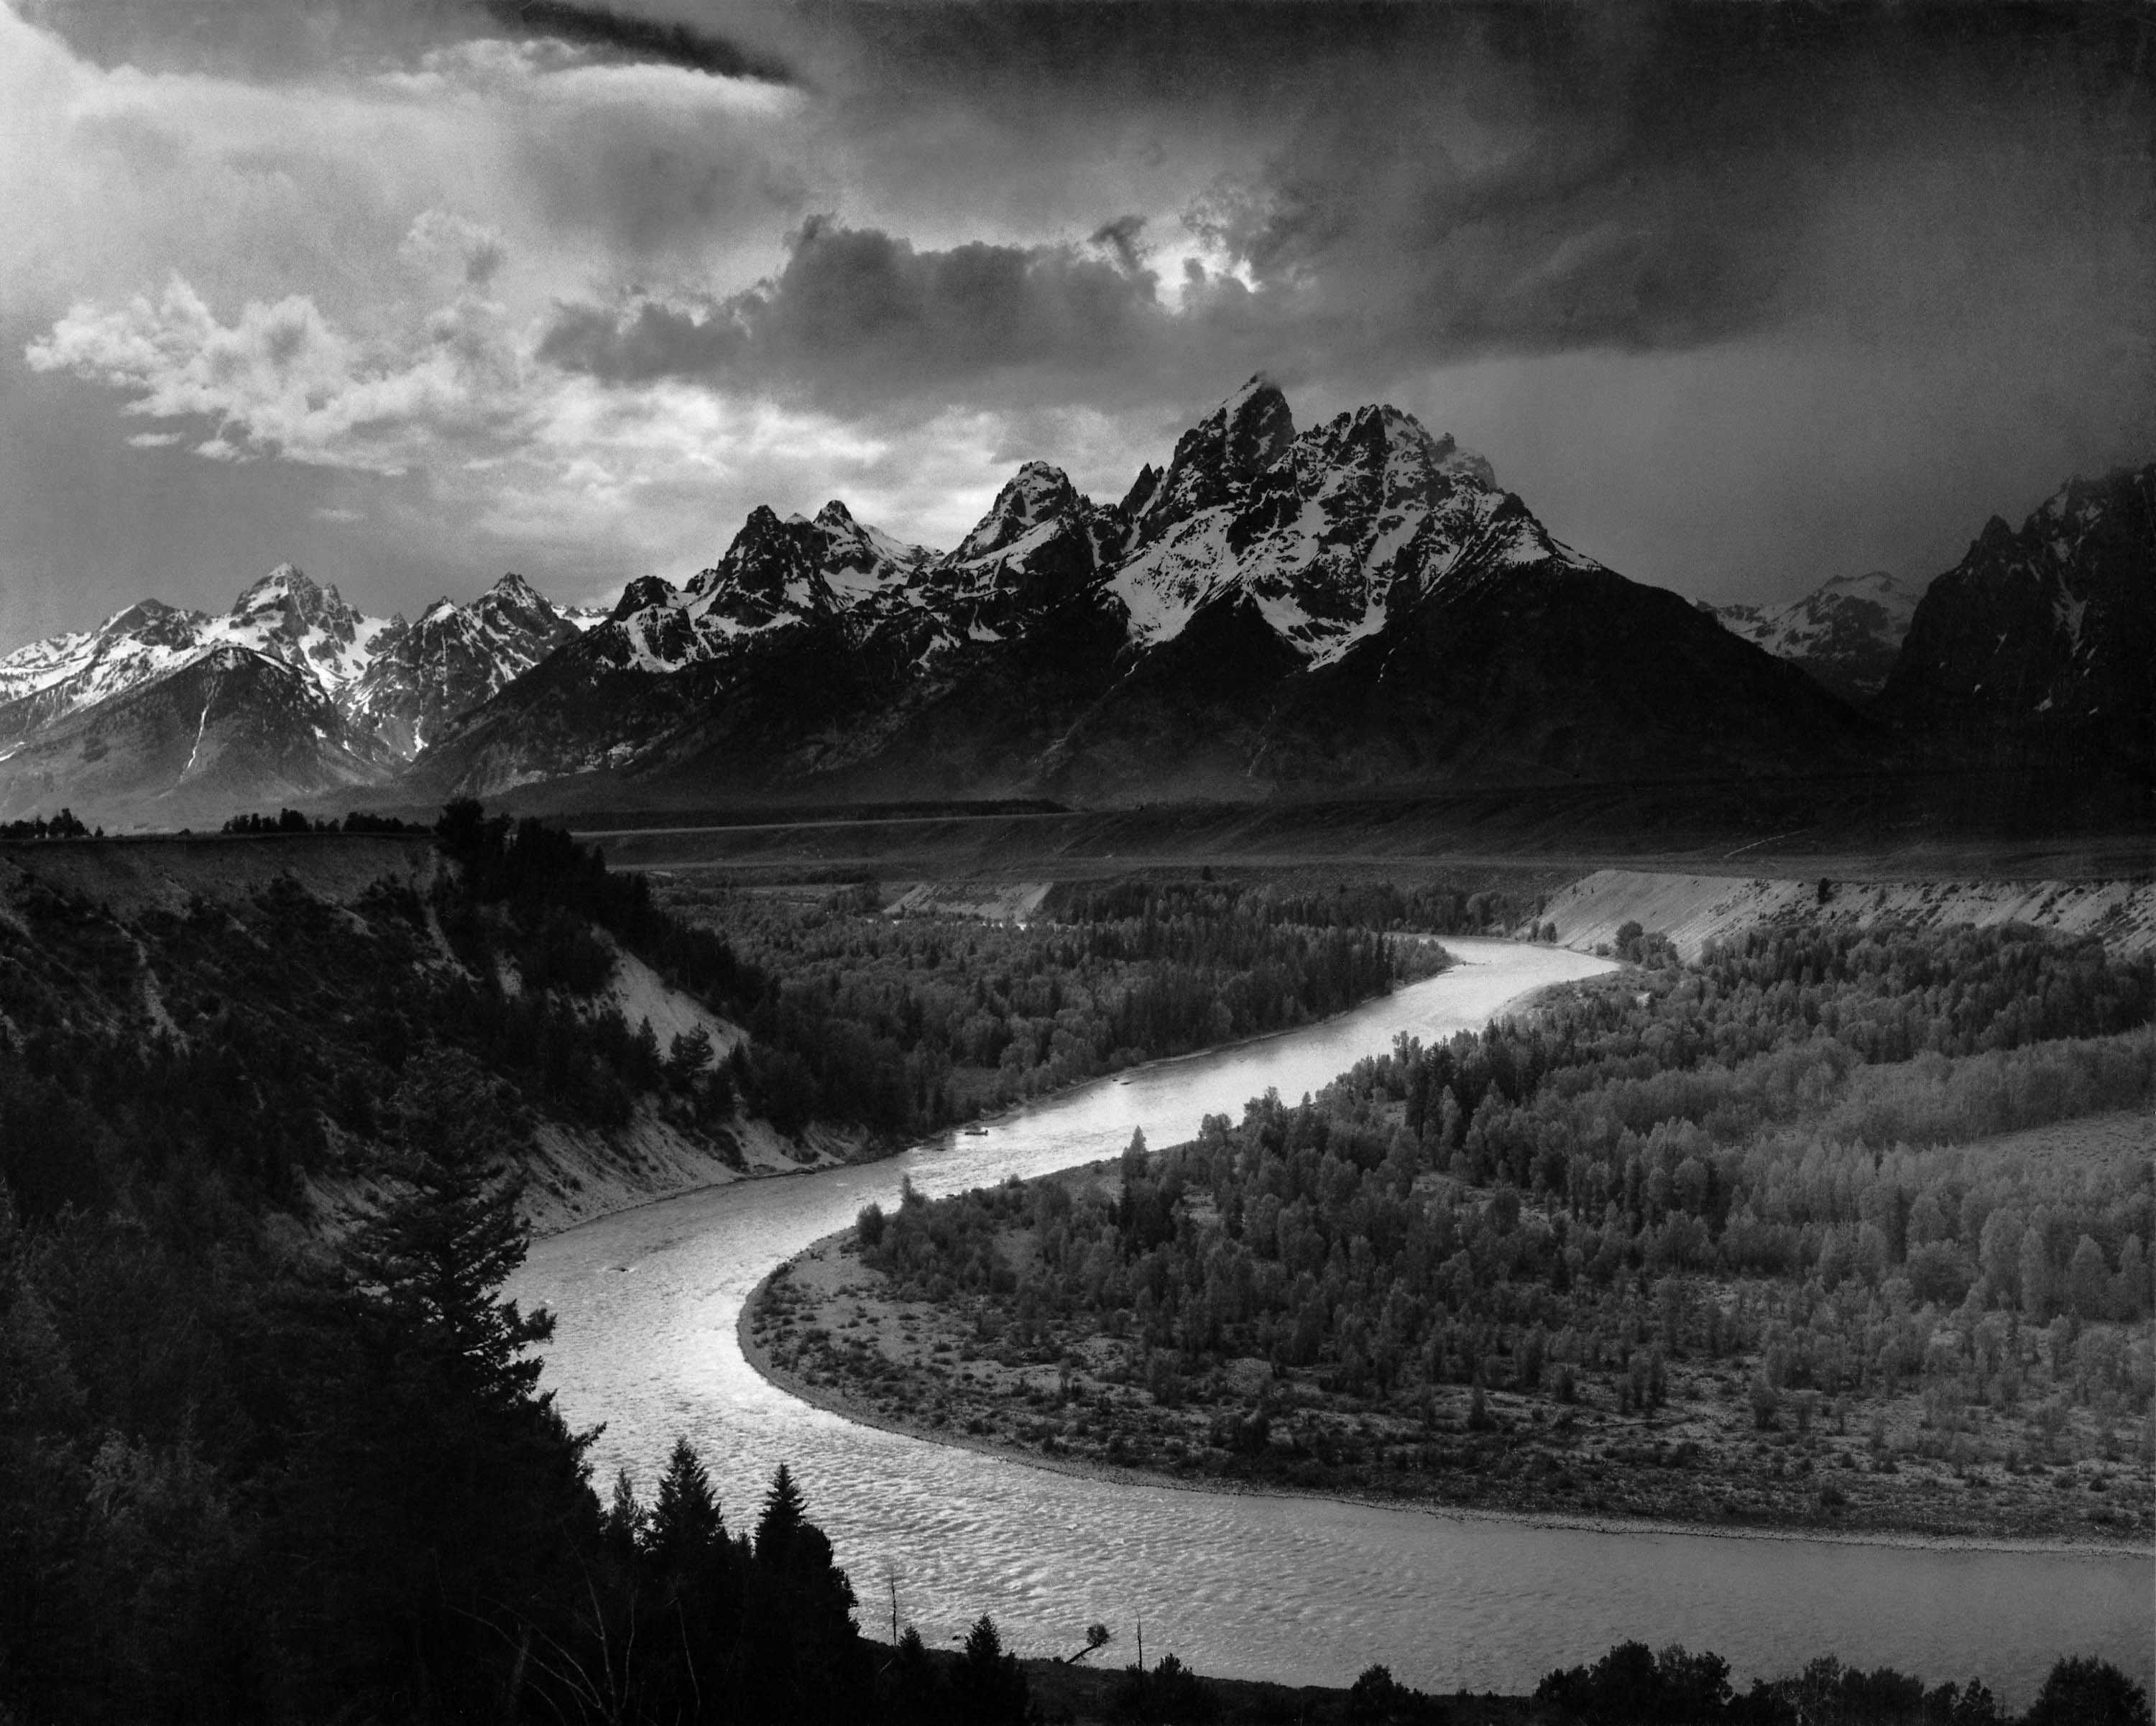 This is a famous example of black and white photography by ansel adams its called